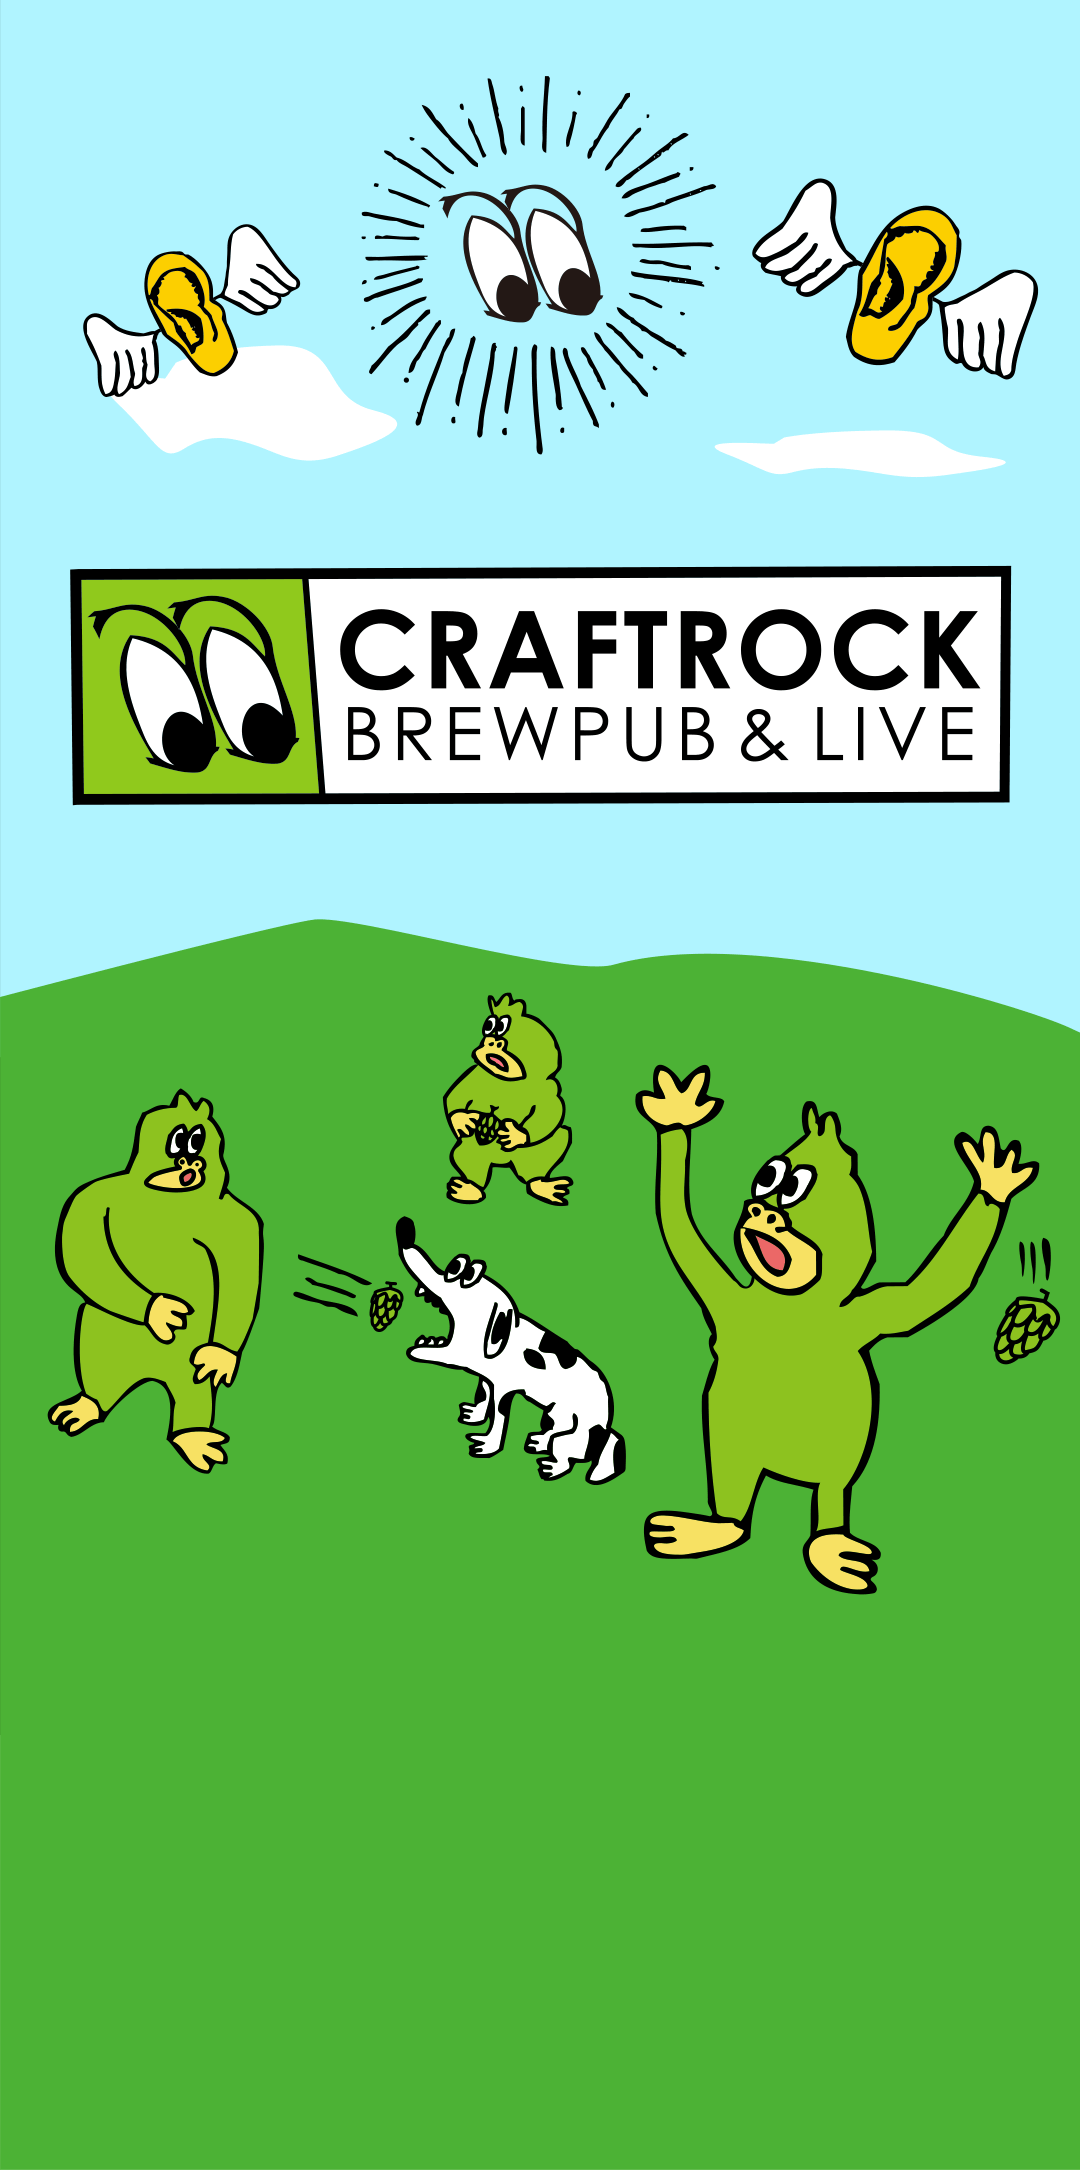 CRAFTROCK BREWPUB&LIVE FRESH BEER, STEAK & MUSIC LIVE!!